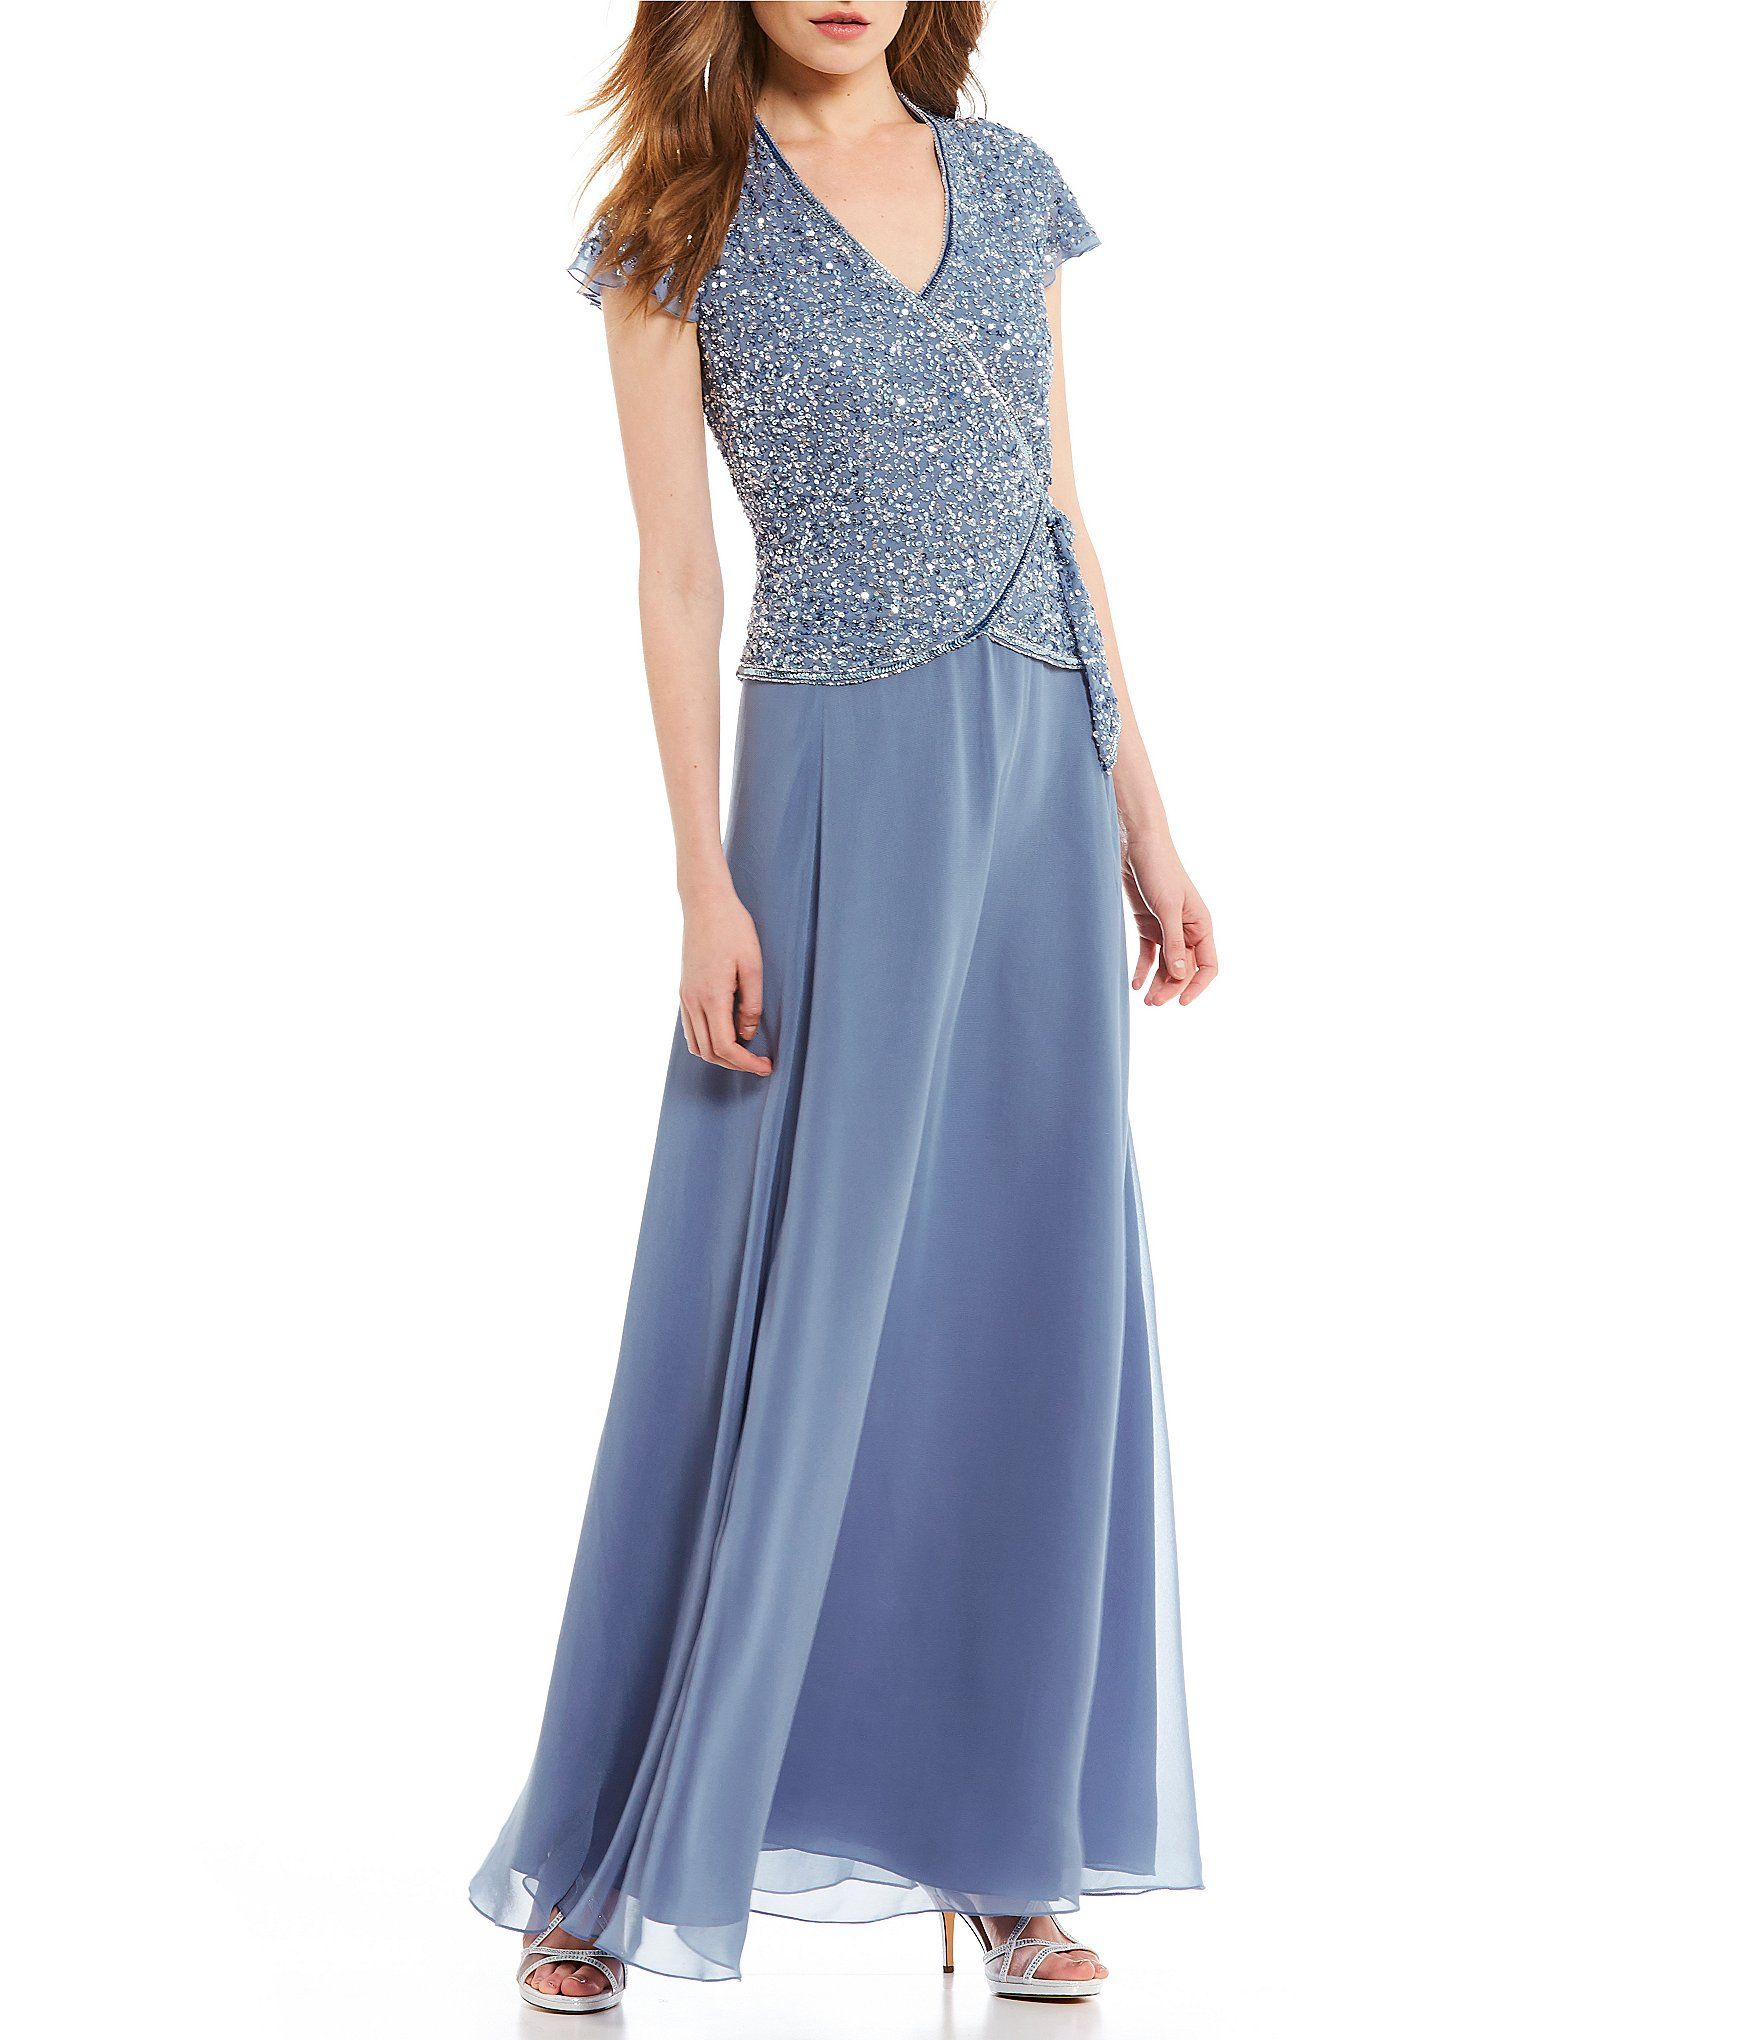 Jkara Sequin Faux Wrap Gown #Dillards | Mother of the bride dresses ...